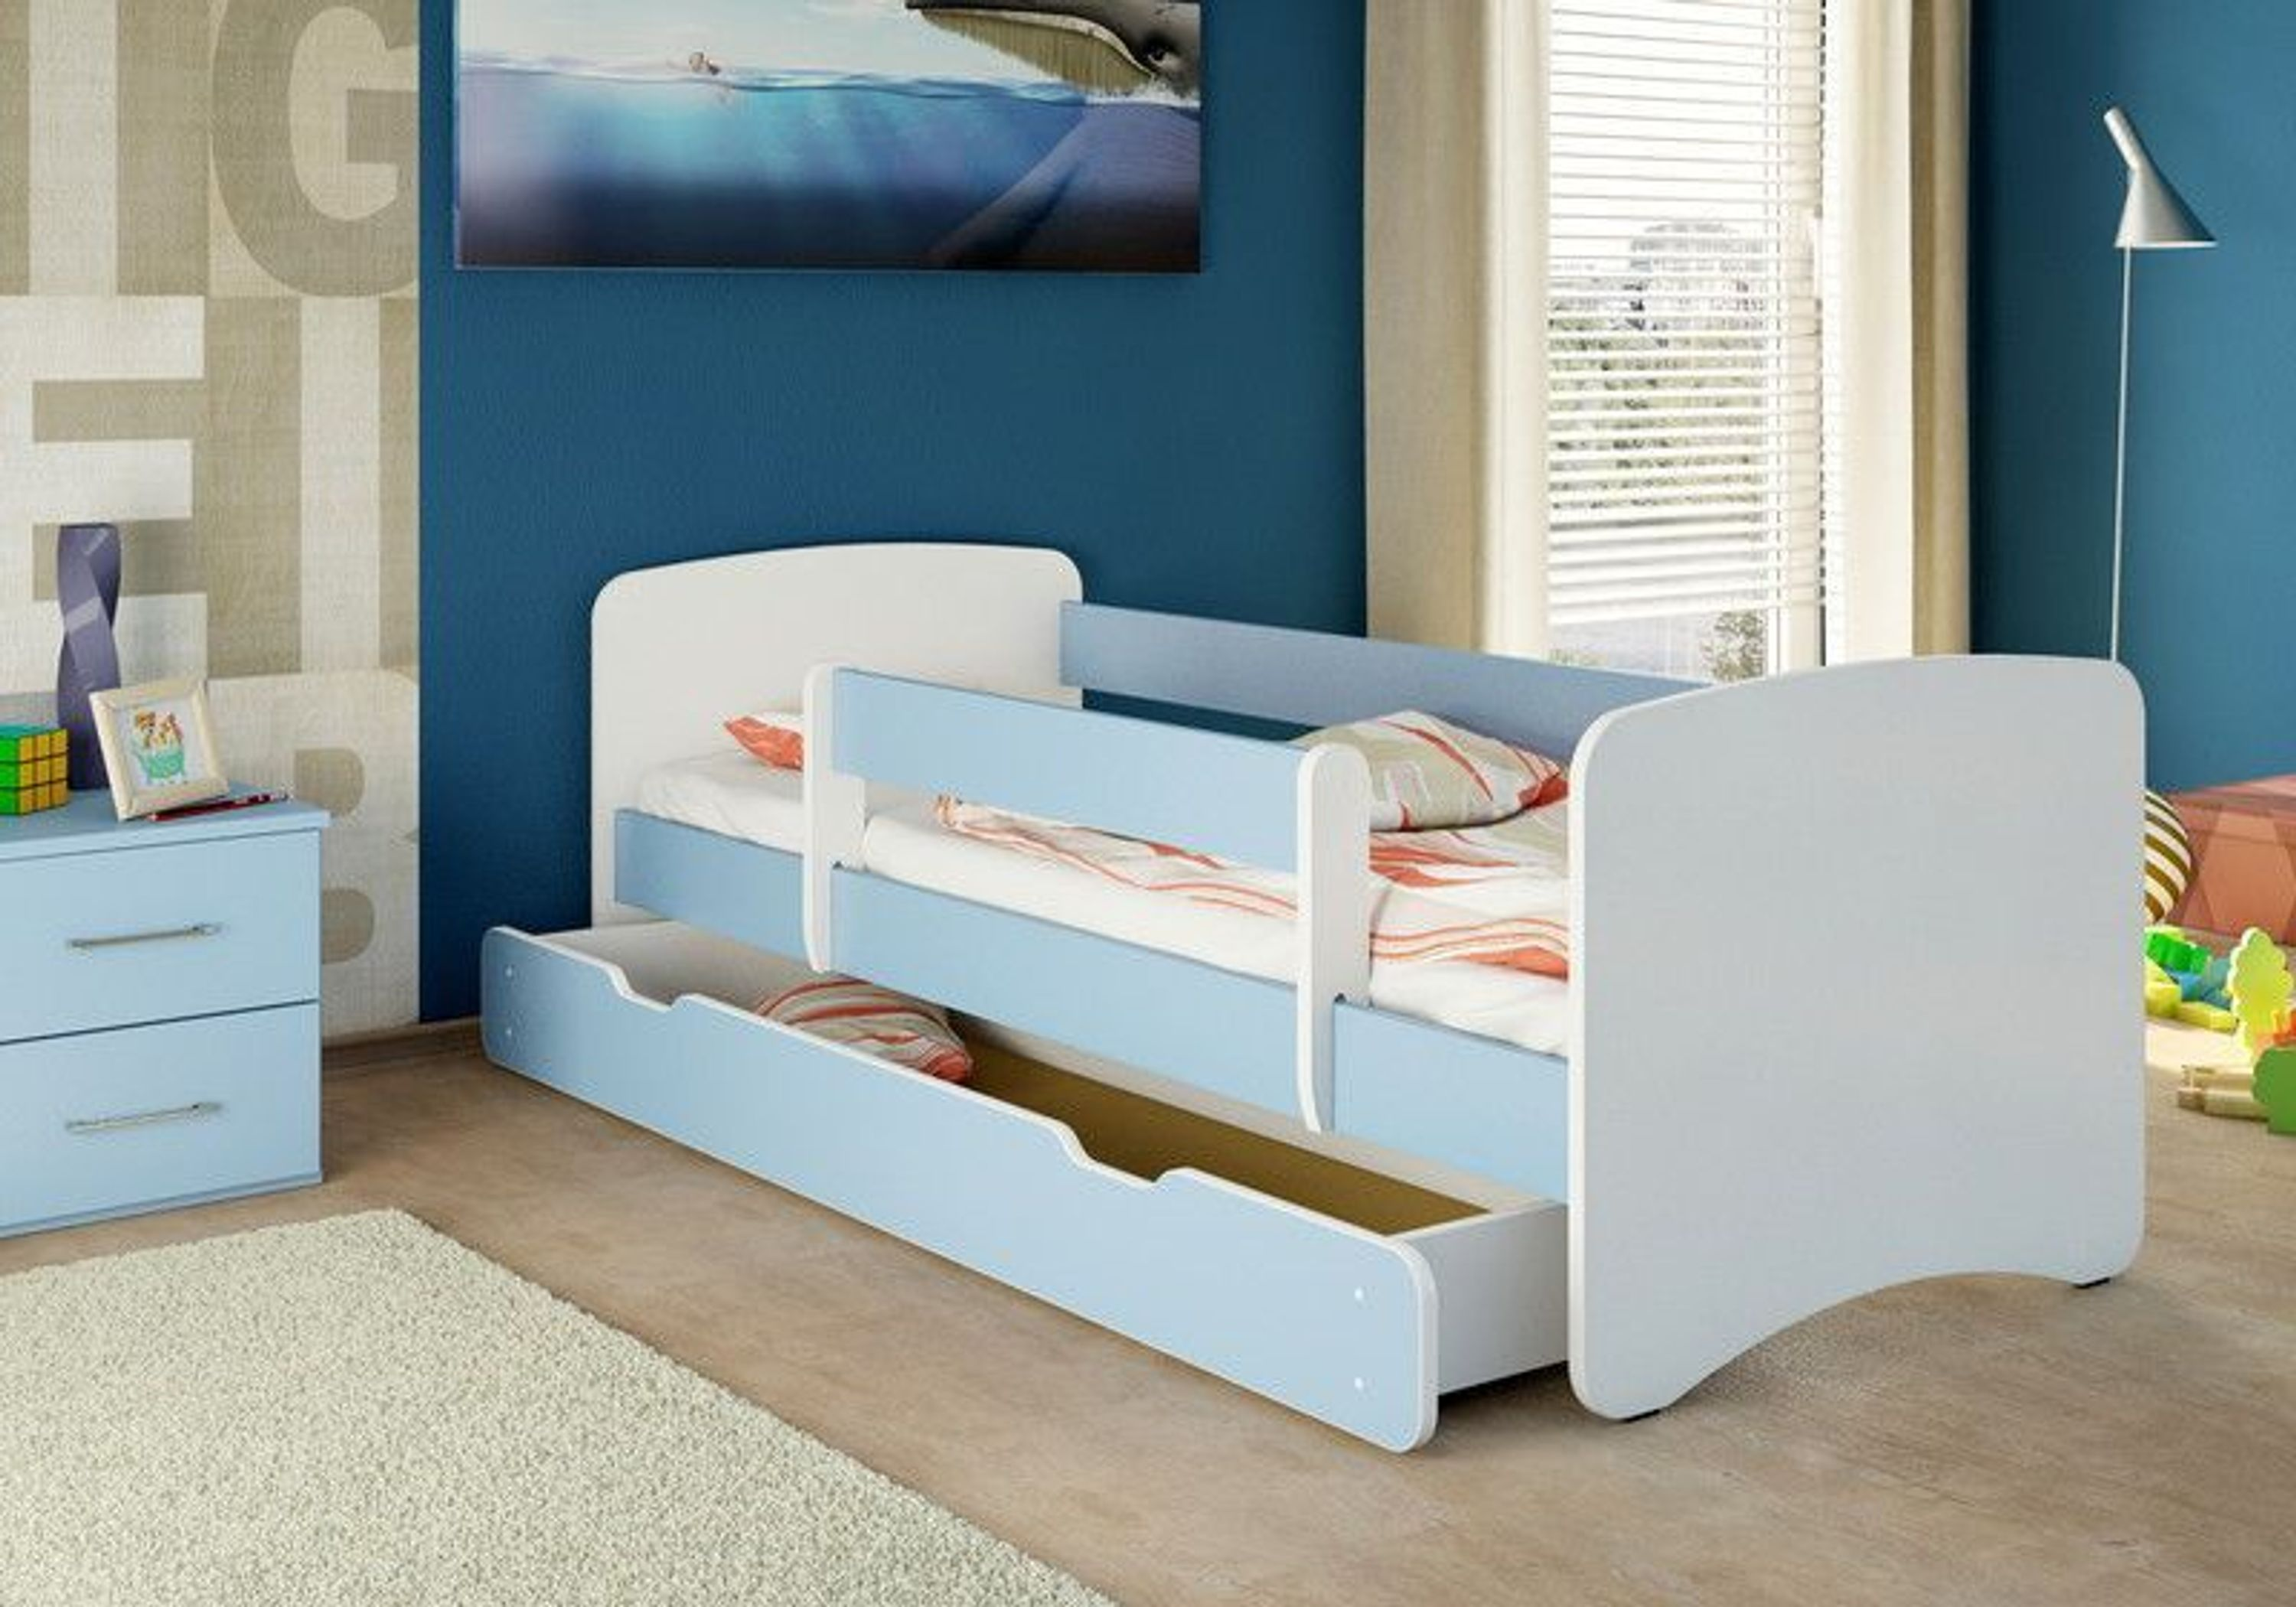 nicenico kinderbett jugendbett bettkasten matratze 160 70 blau kaufen bei. Black Bedroom Furniture Sets. Home Design Ideas